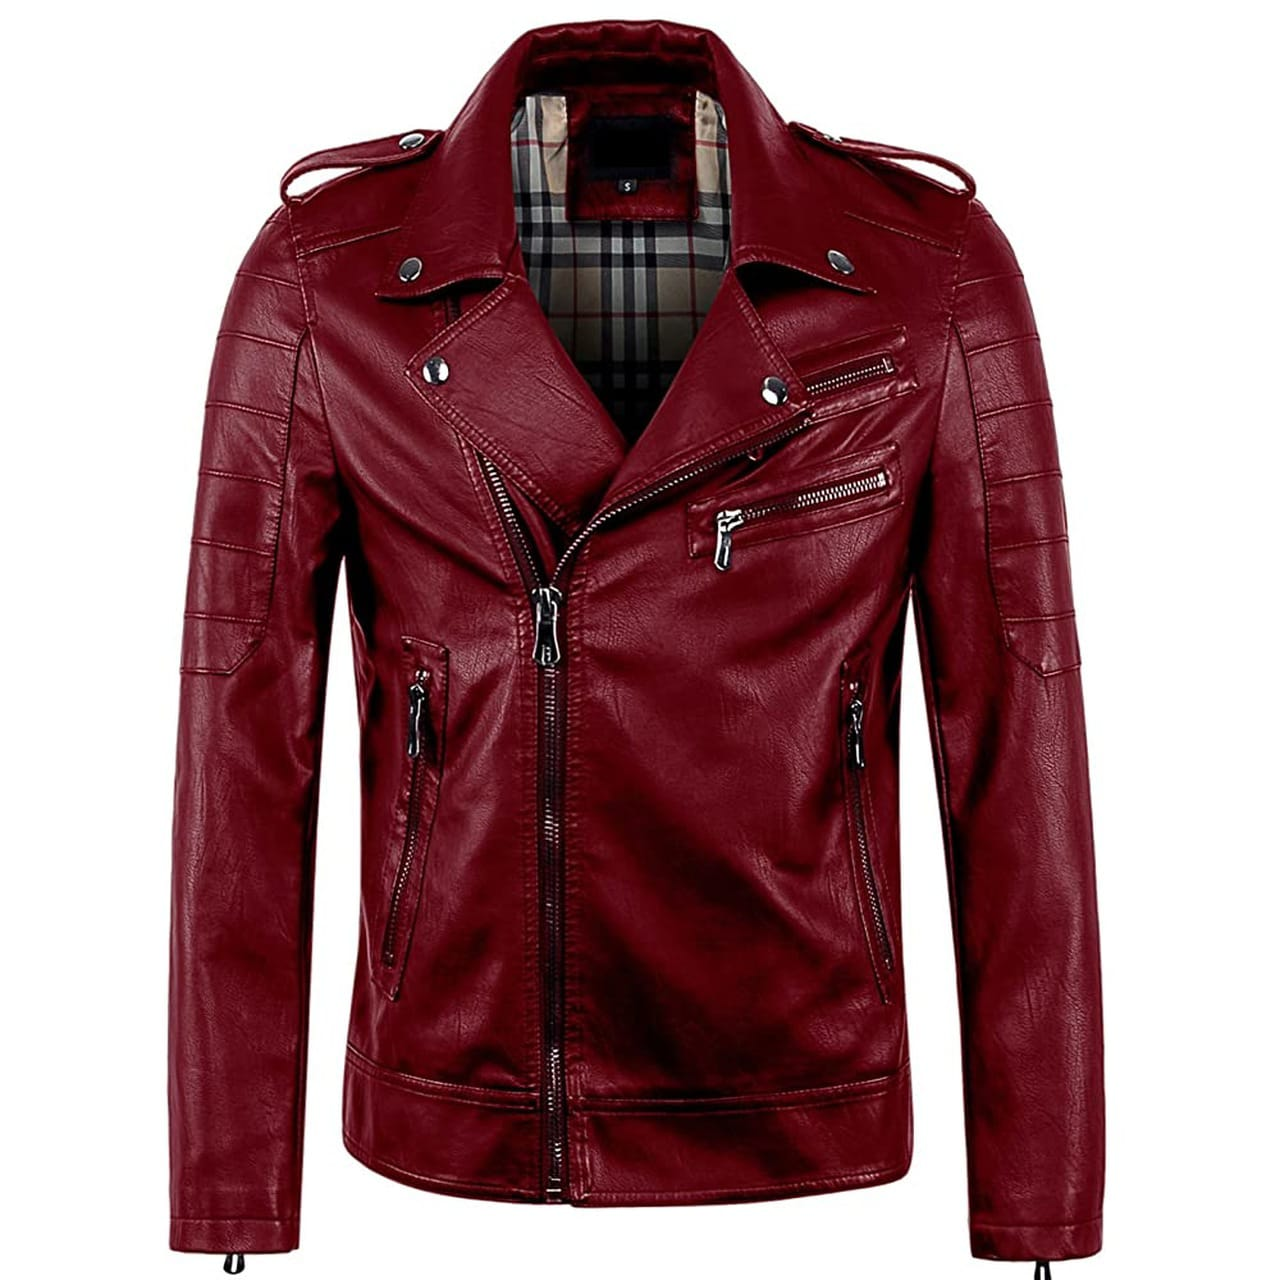 Light Weight Geniune Leather Jacket with Zip in Red Vintage Color for Men